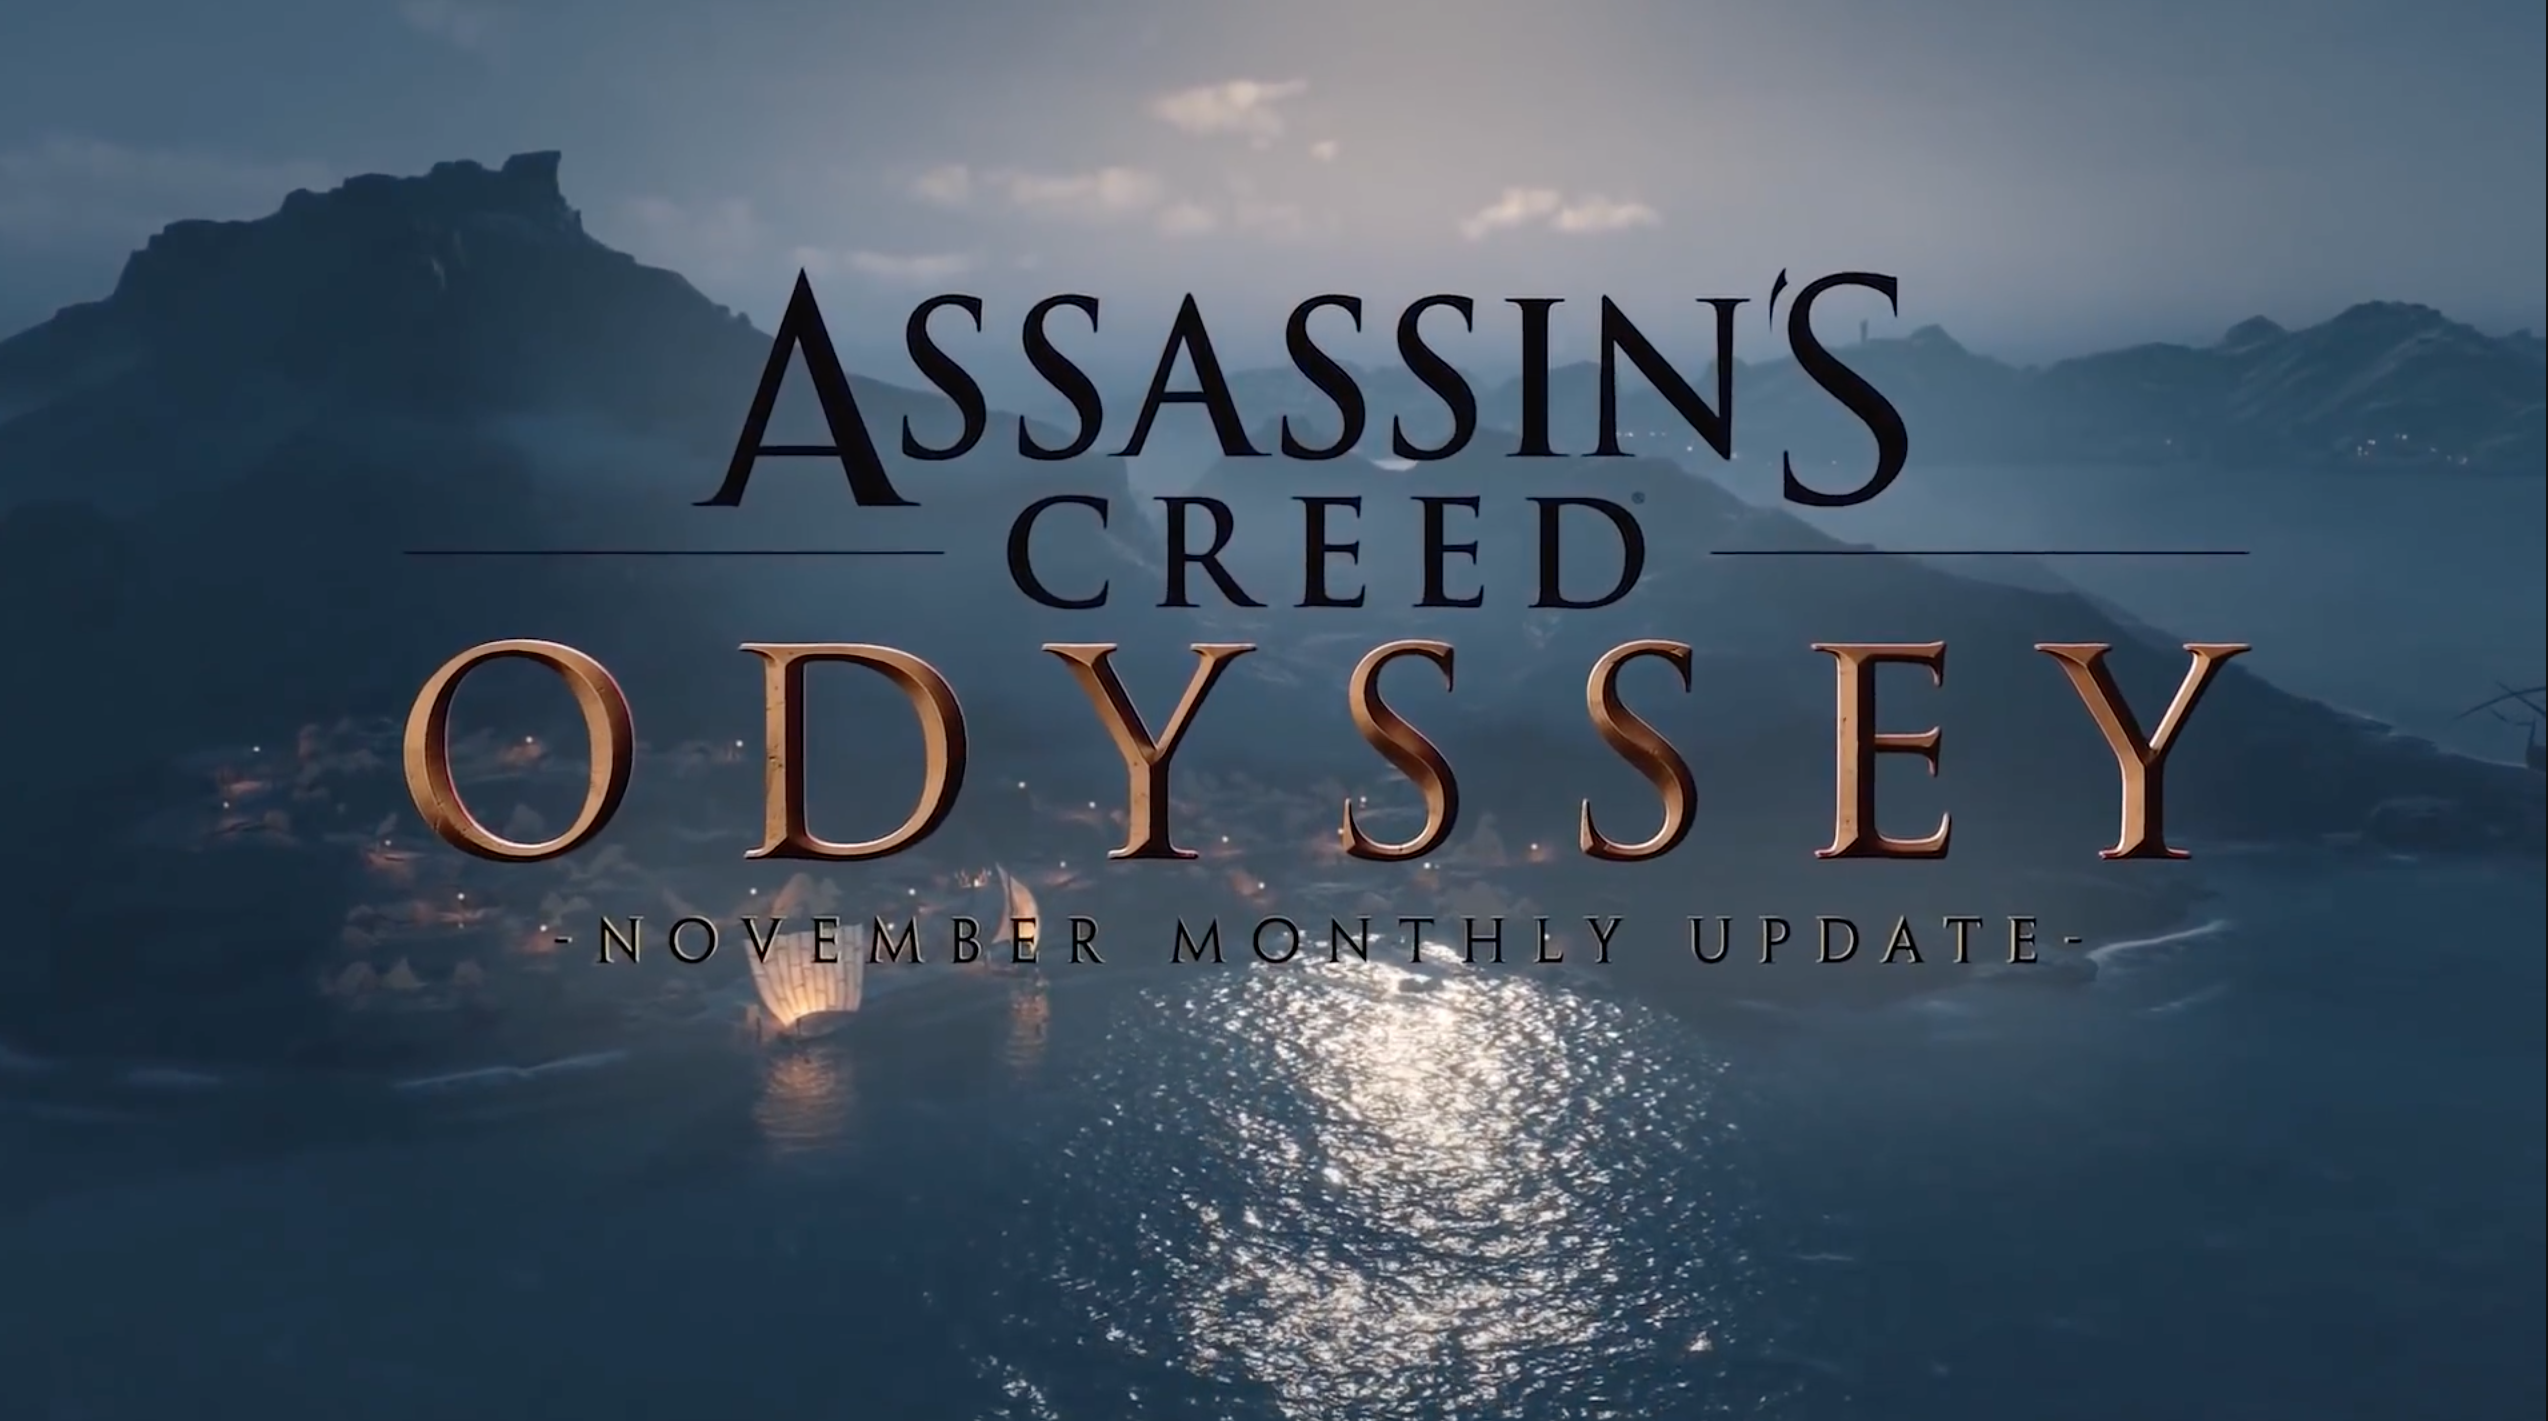 Assassin's Creed Odyssey – November Monthly Update